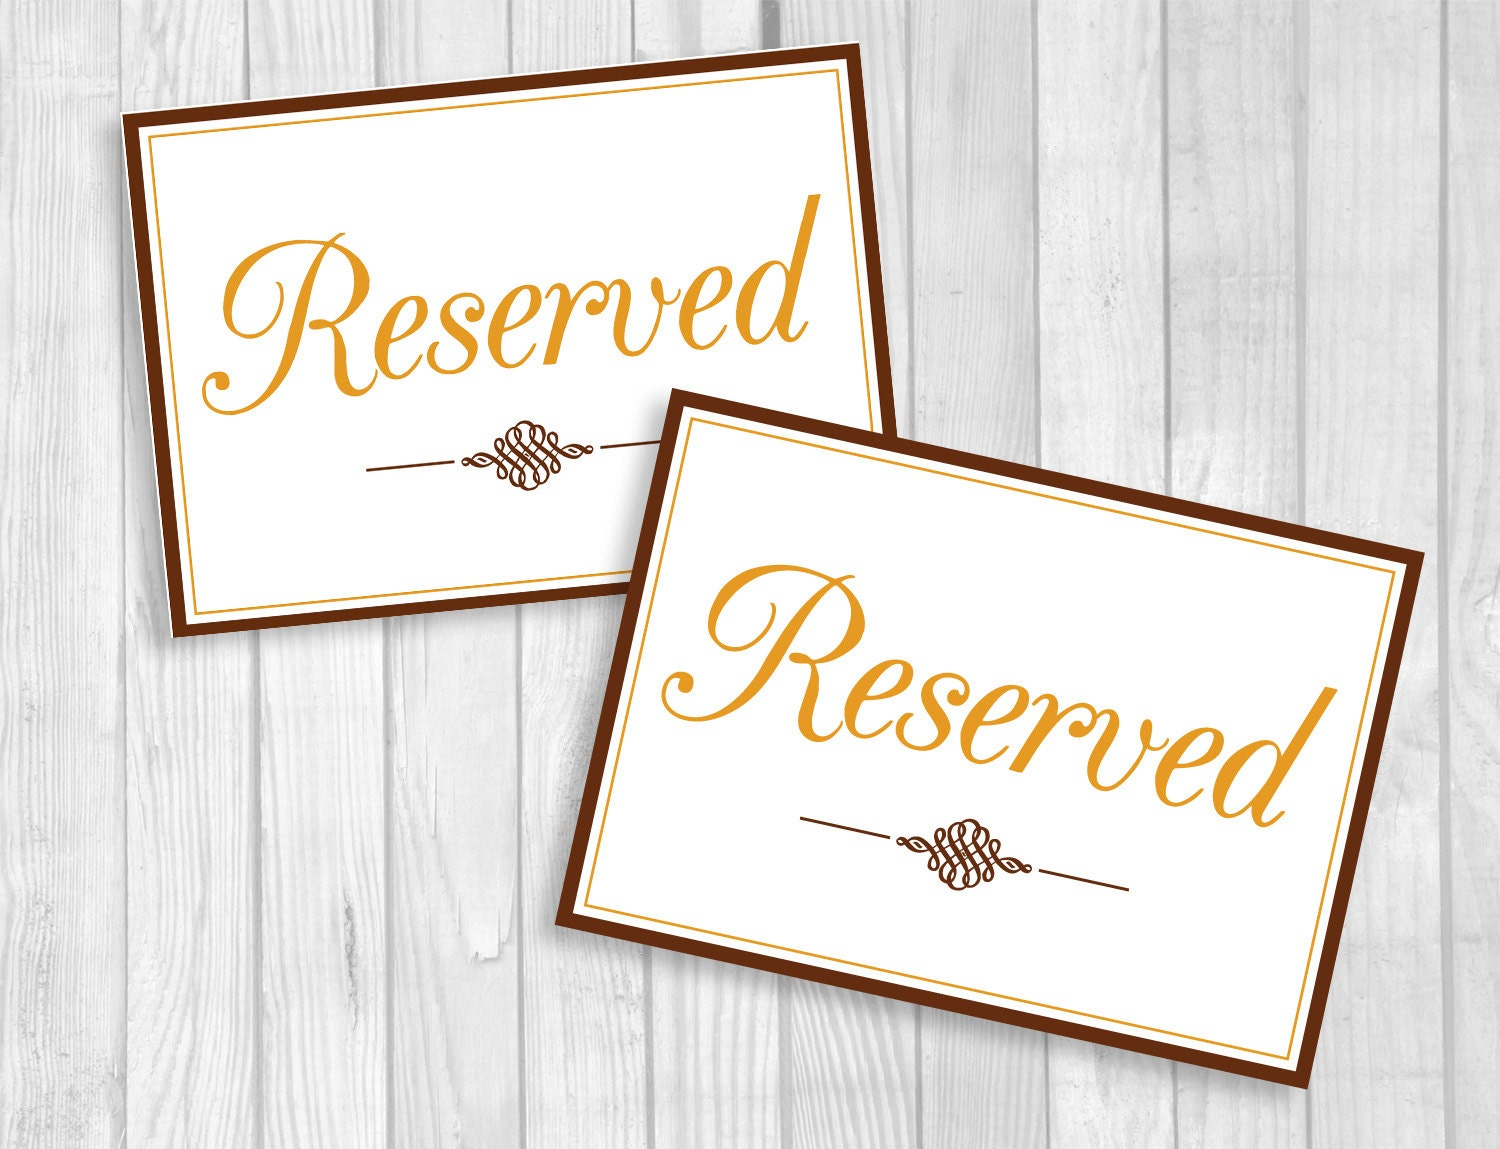 It's just a picture of Epic Printable Reserved Signs